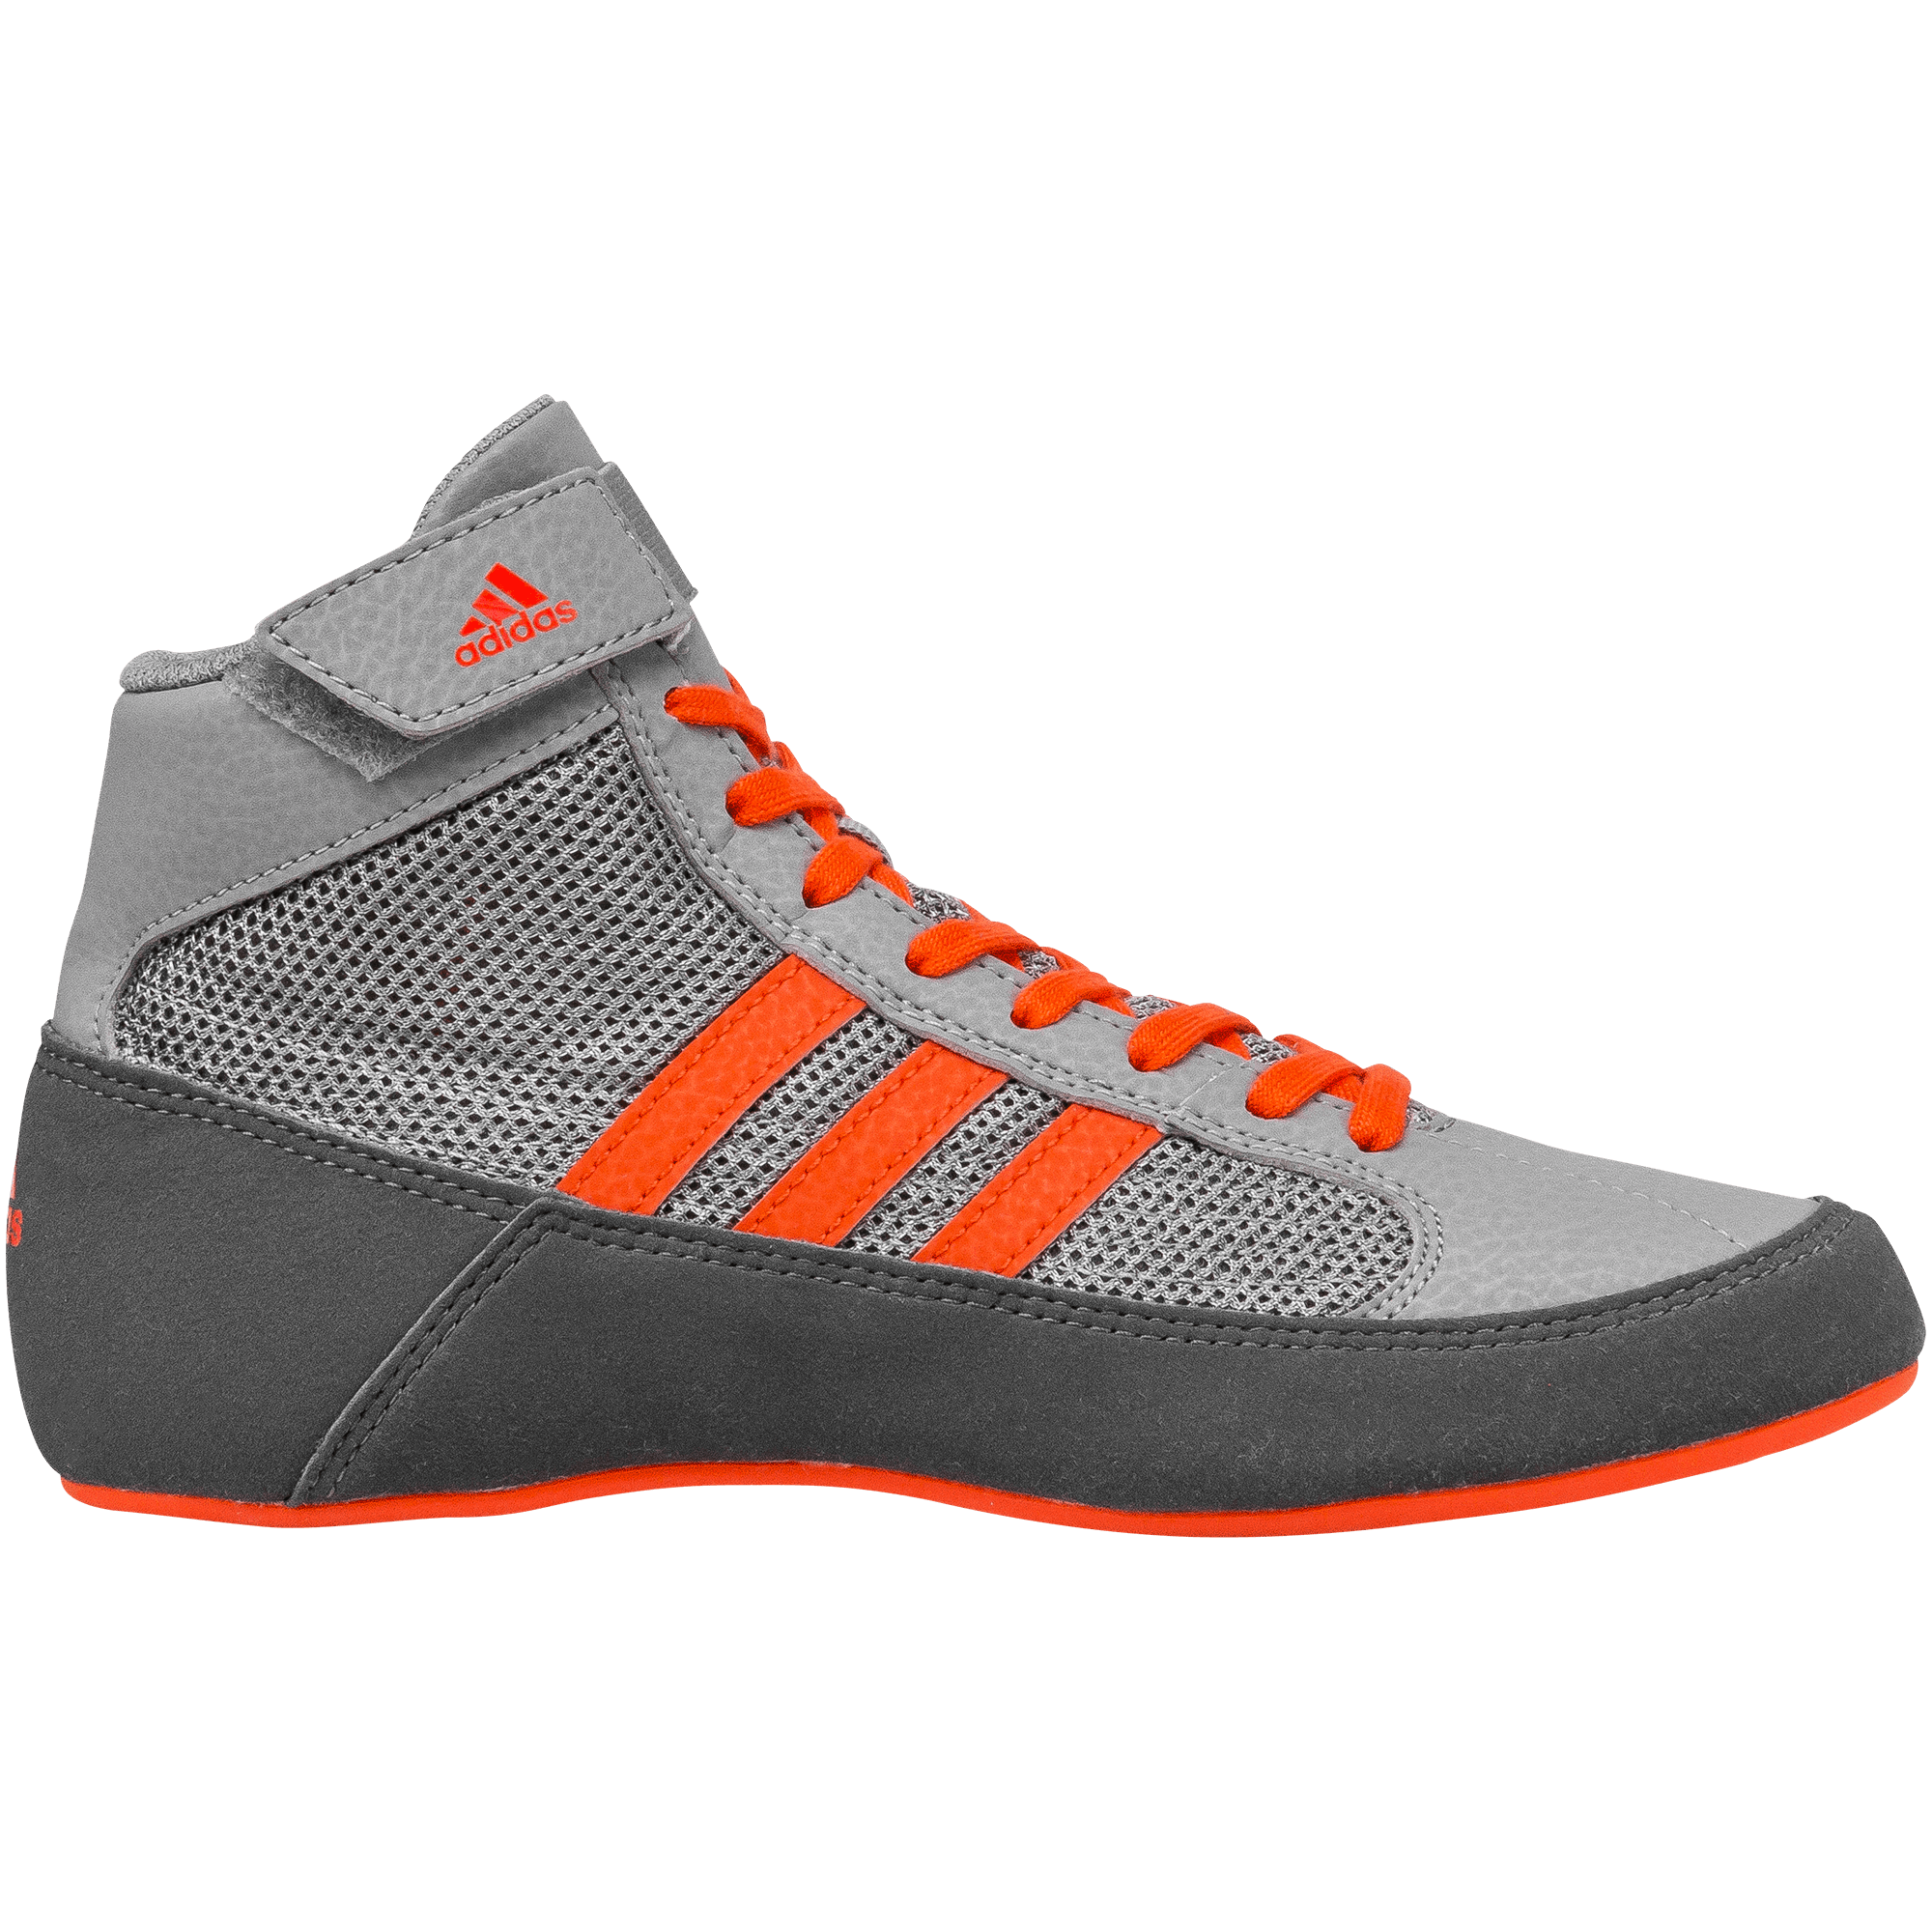 tout neuf d22c7 af1b2 Adidas Wrestling Shoe Review - The simple brilliance that is ...